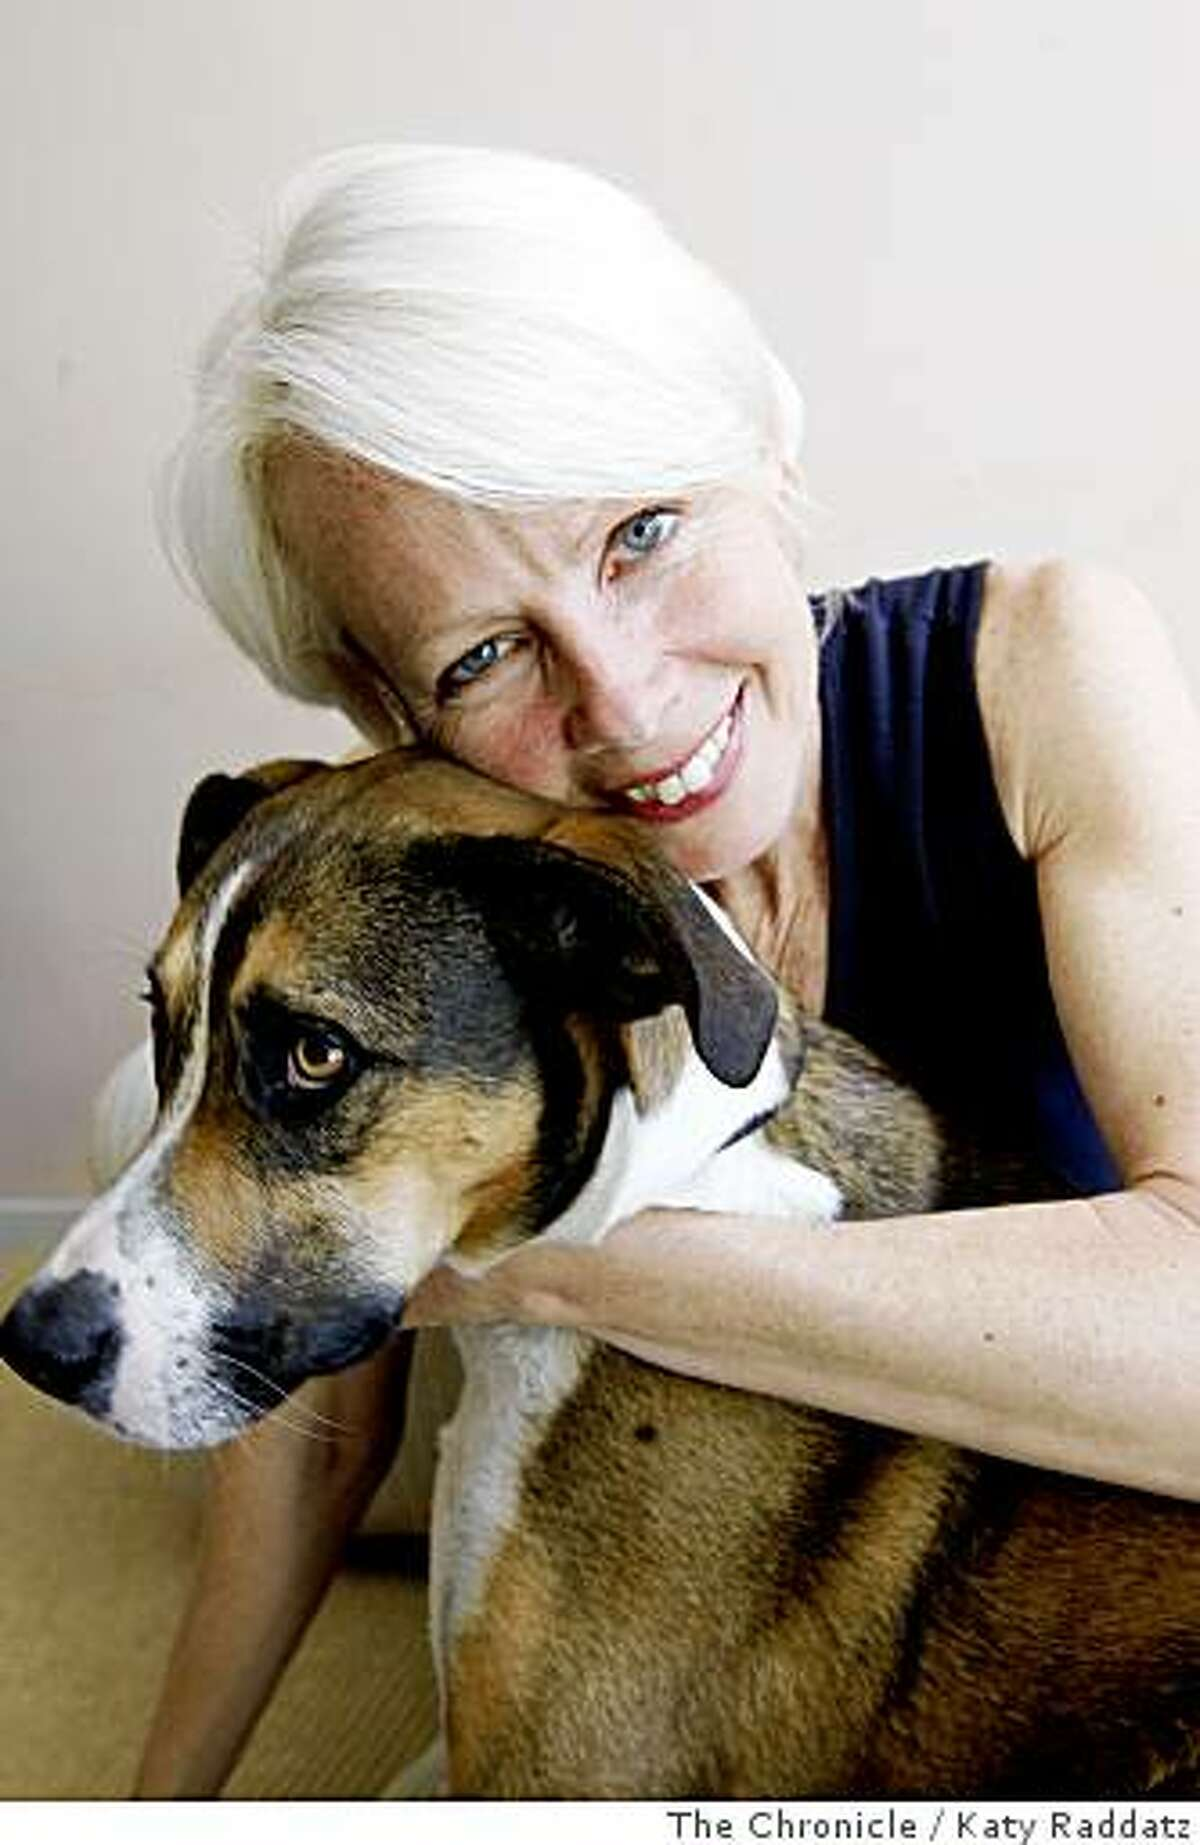 """Joan Jeanrenaud is a cellist, formerly with the Kronos Quartet. She poses for a portrait with her dog """"Jack"""" in her home in San Francisco, Calif. on June 18, 2008.Photo by Katy Raddatz / The Chronicle"""